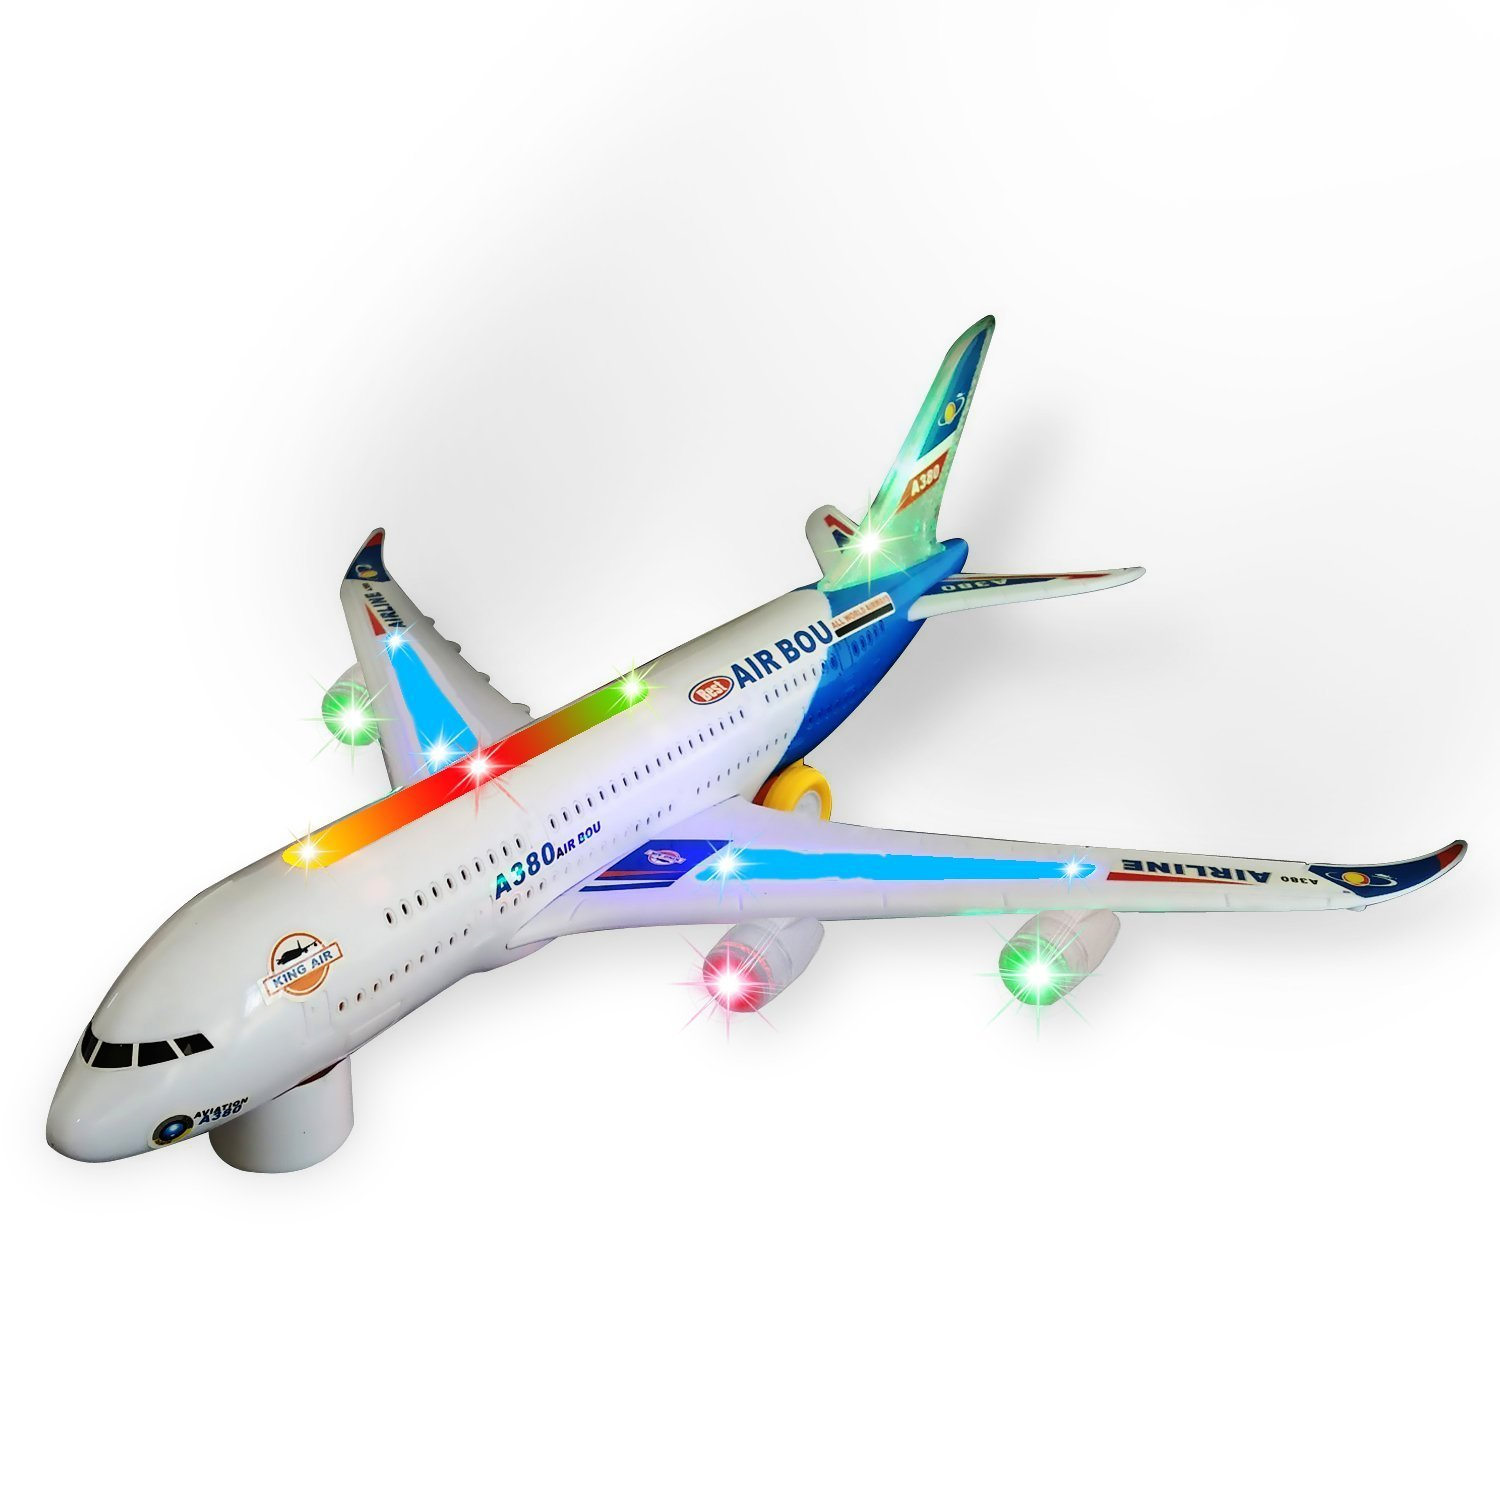 Zviku Kids airplane A380 toy plane self driving bump & go Airbus - Contains Beautiful 3D Light and Jet engine - Changes Direction On Contact - Great Gift toy for boys & girls age 2 - 8 years old